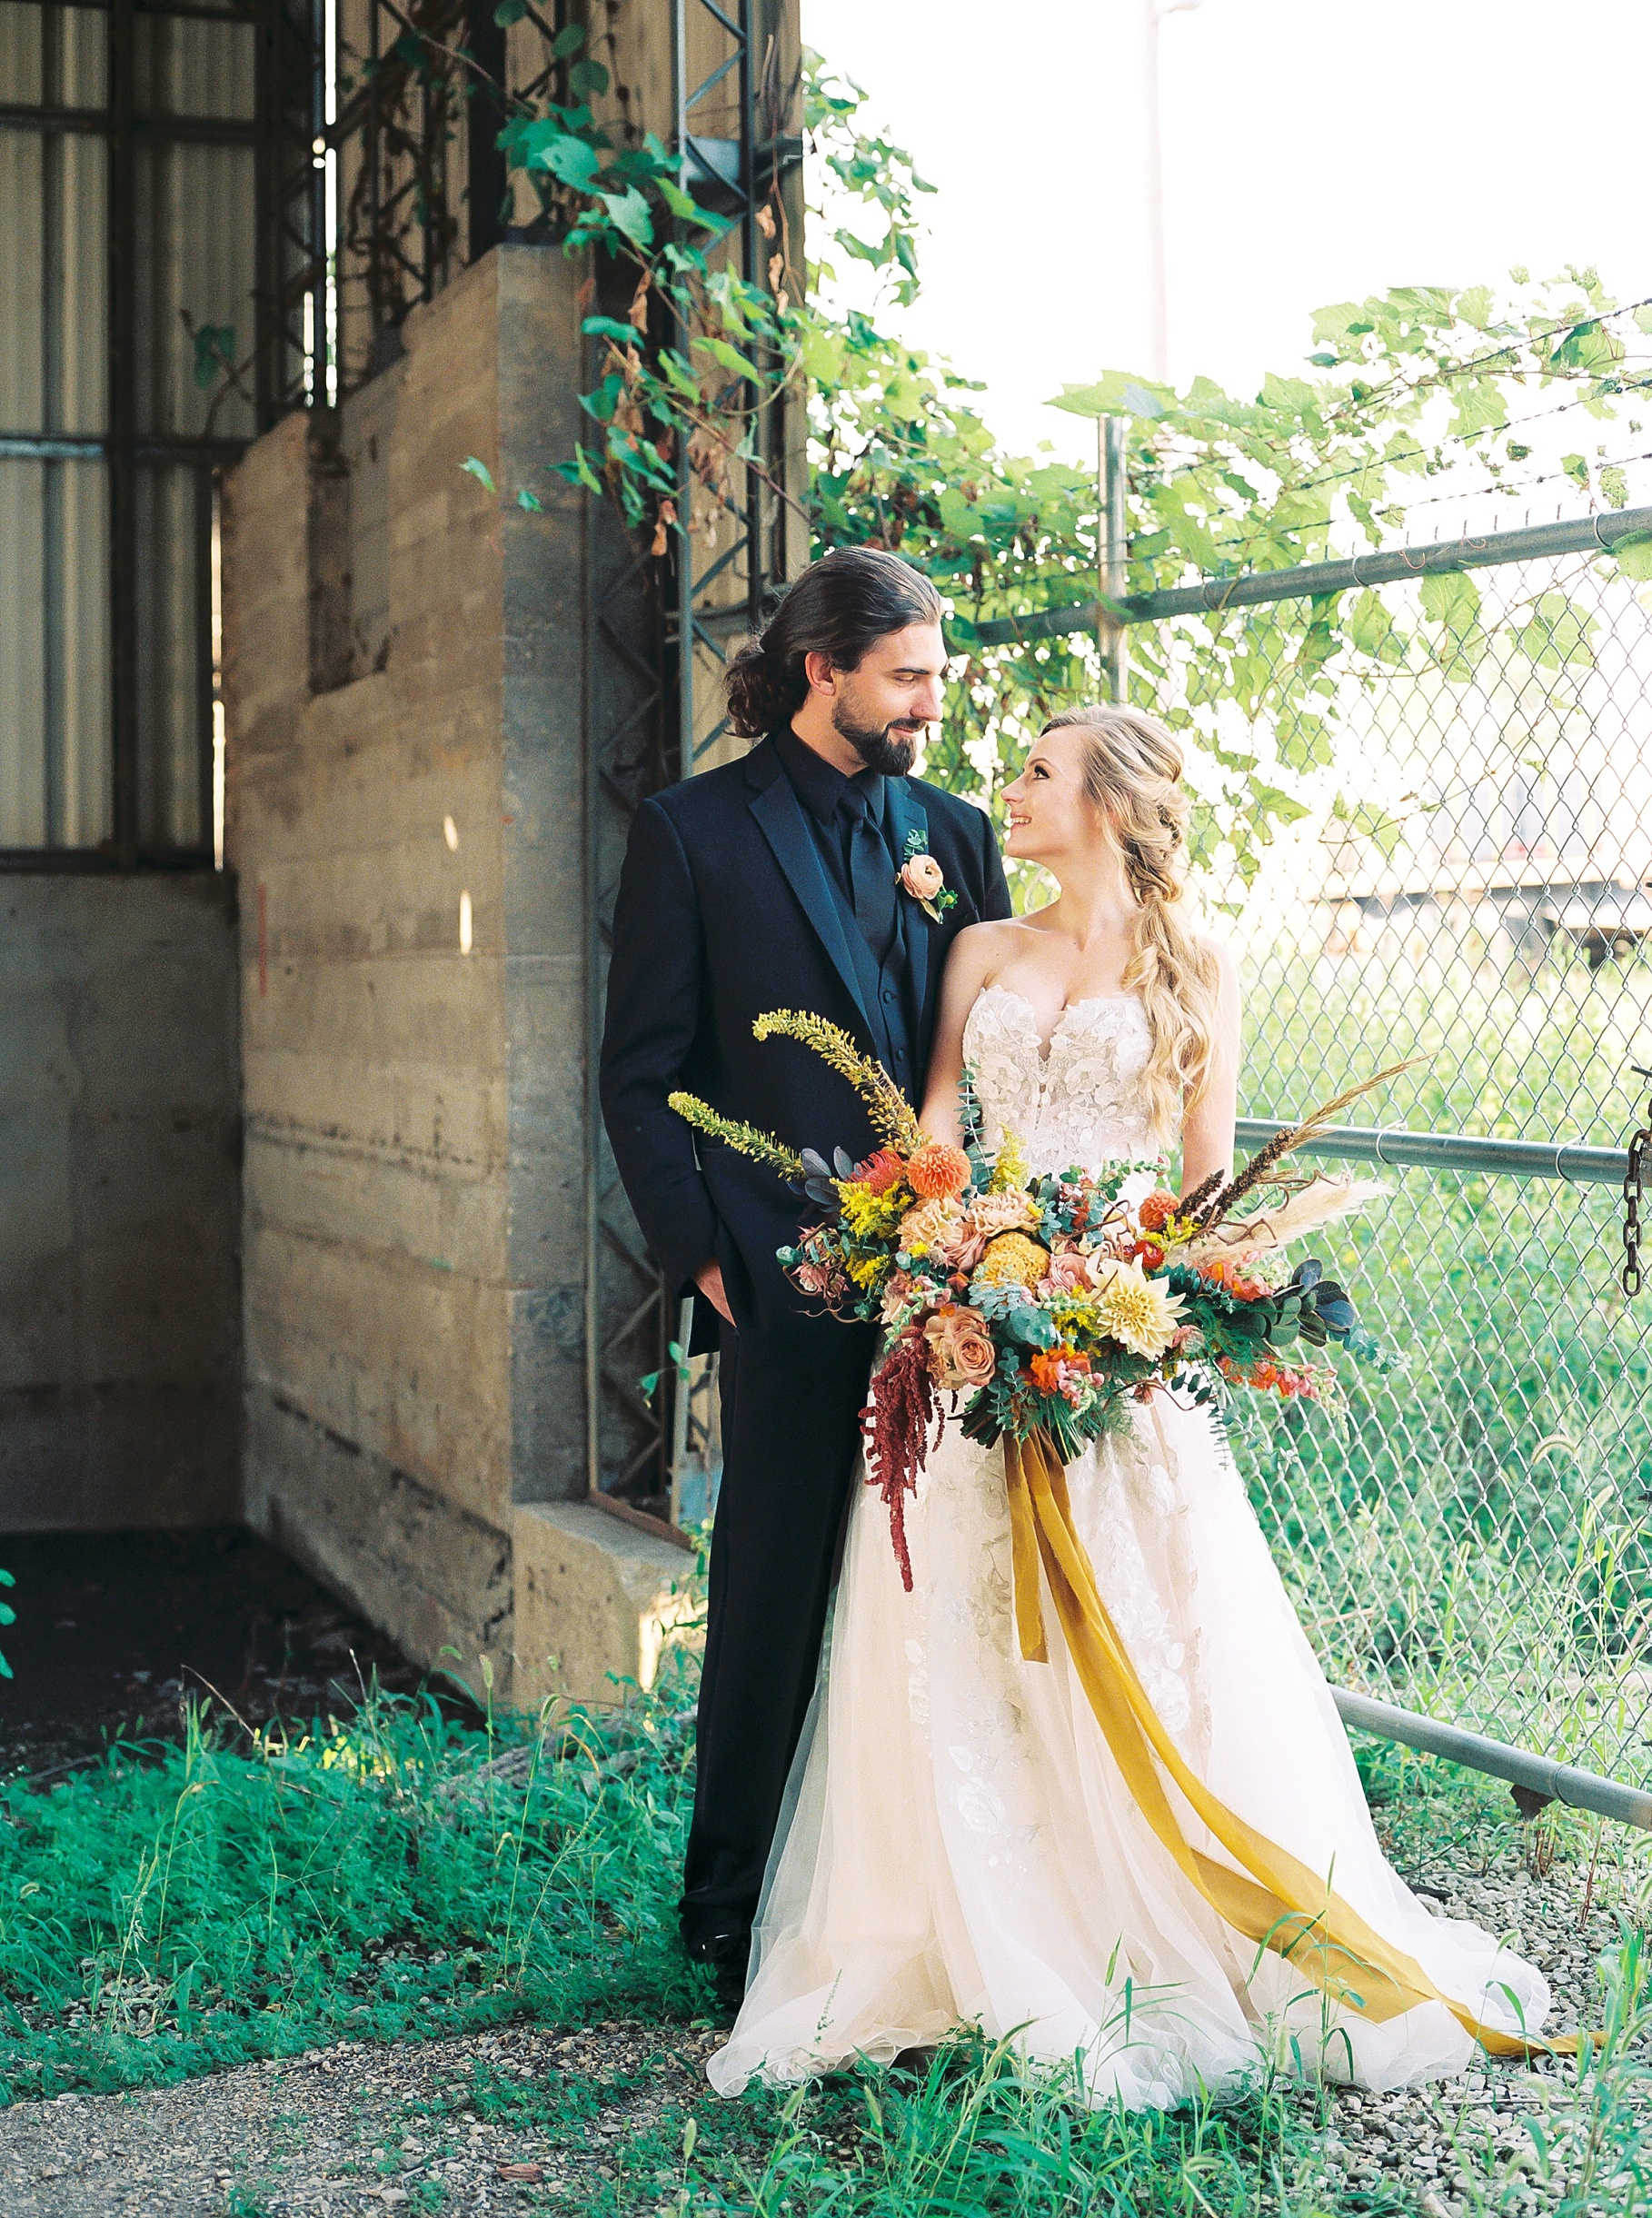 Urban Romance Wedding with Copper Accents at The Millbottom by Kelsi Kliethermes Photography Best Columbia Missouri Wedding Photographer_0050.jpg